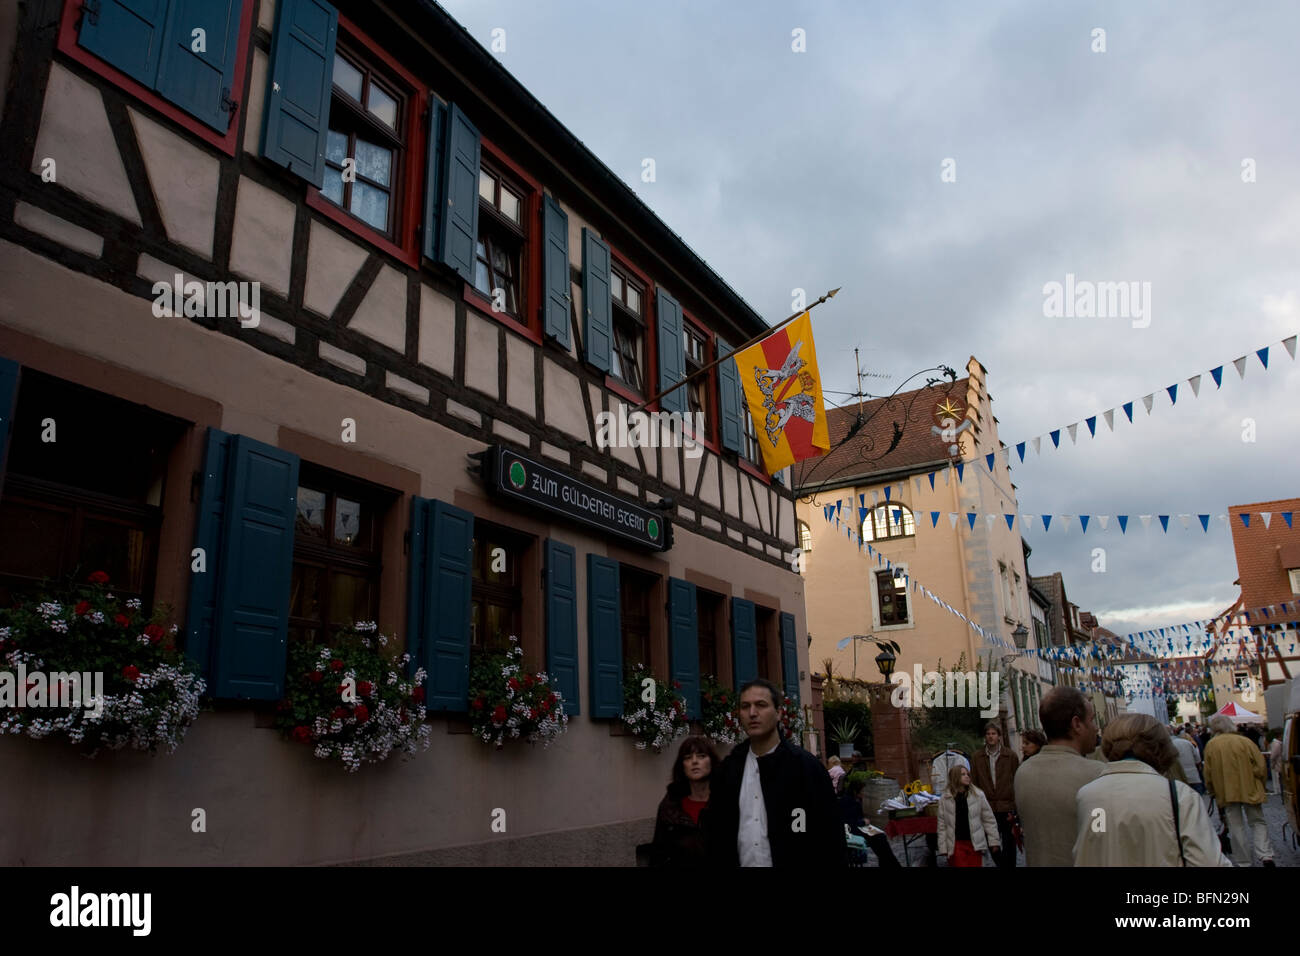 Street scene with historical Fachwerkbau in Ladenburg, Germany - Stock Image